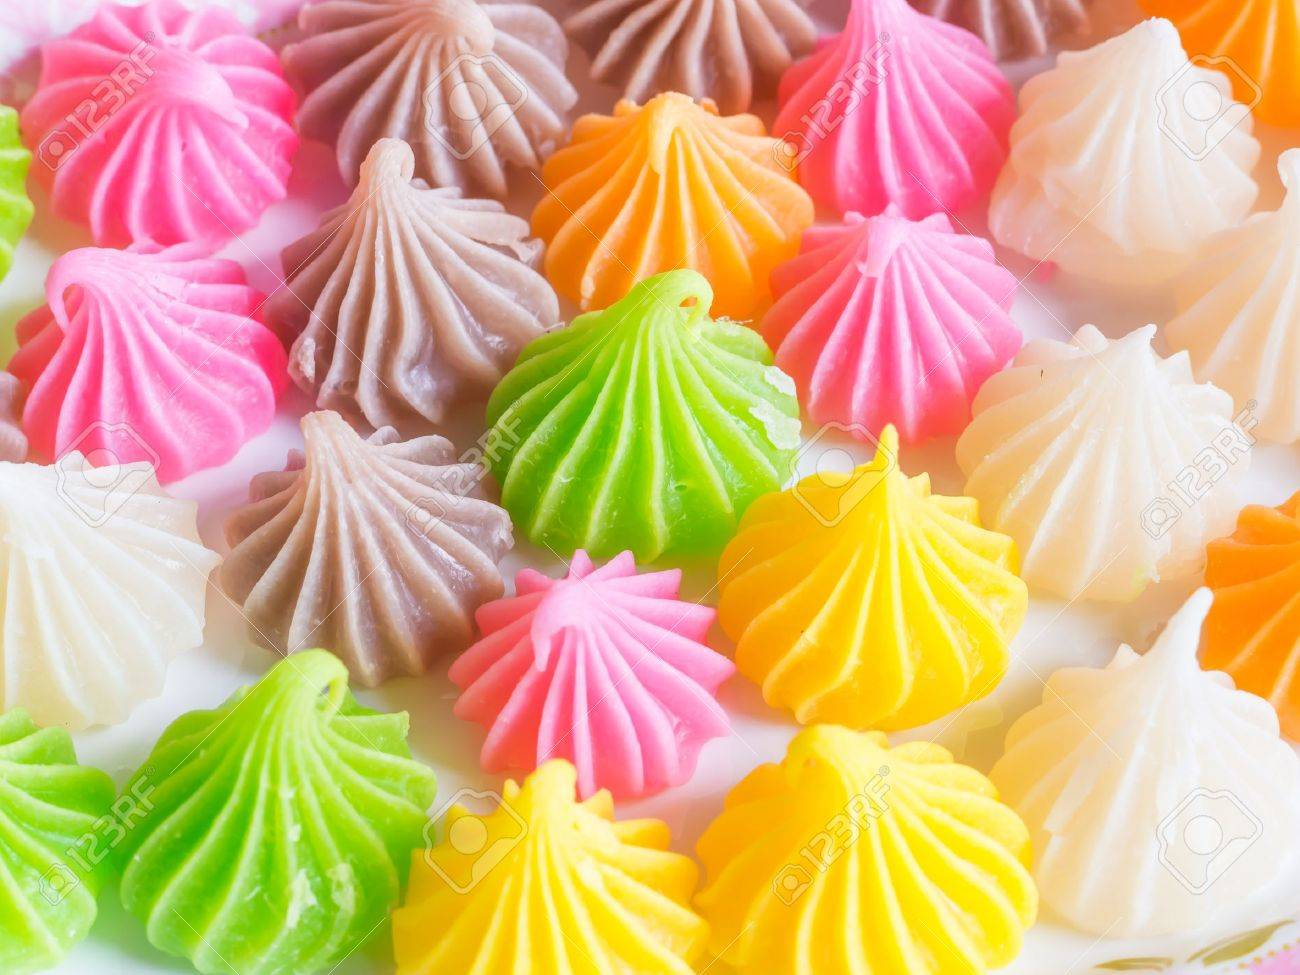 thai sweet dessert Aalaw candy made from wheat flour, chickpea..